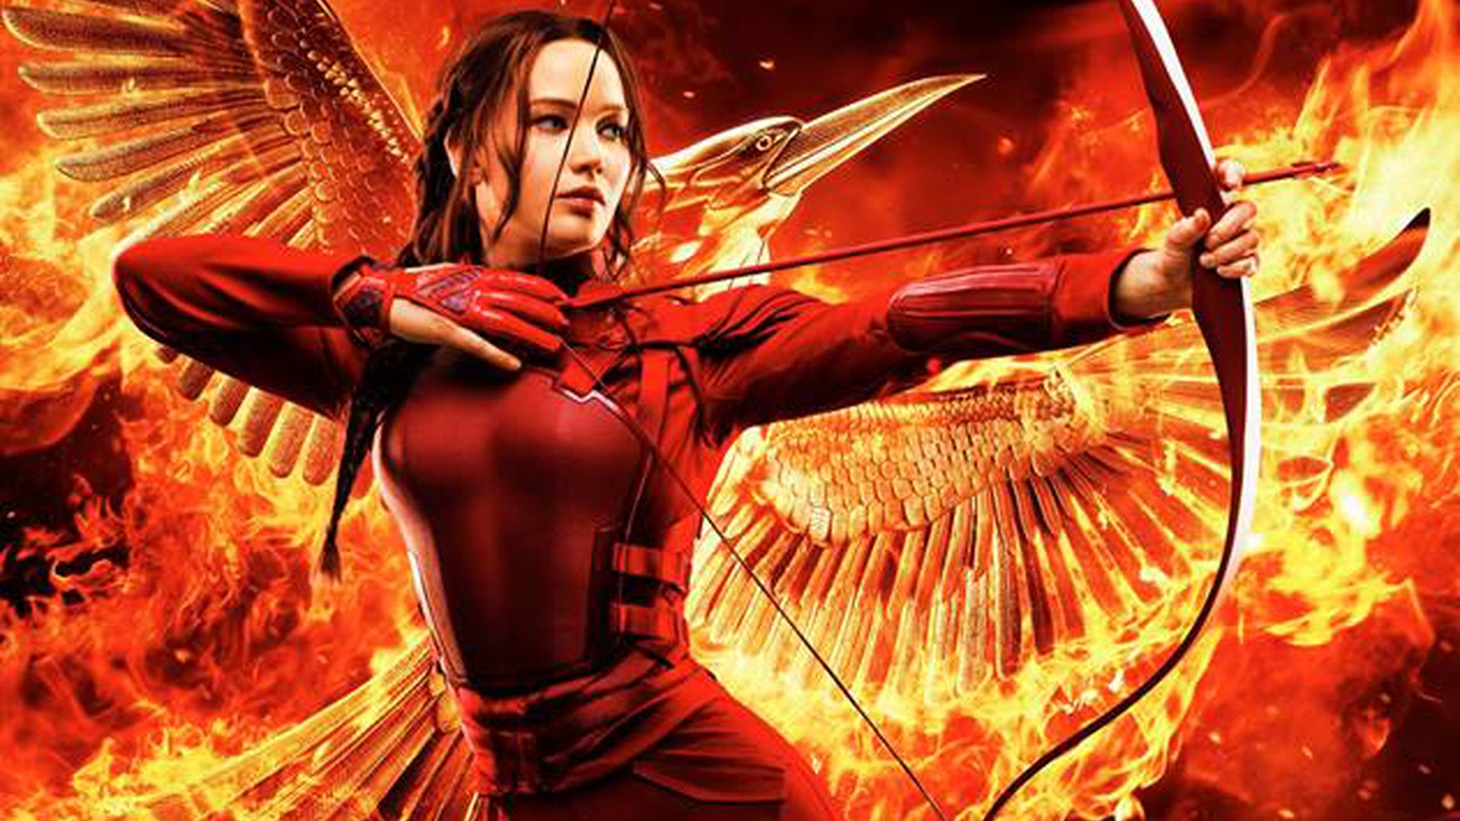 The Hunger Games series has come to a sporadically stirring climax with Mockingjay, Part 2.